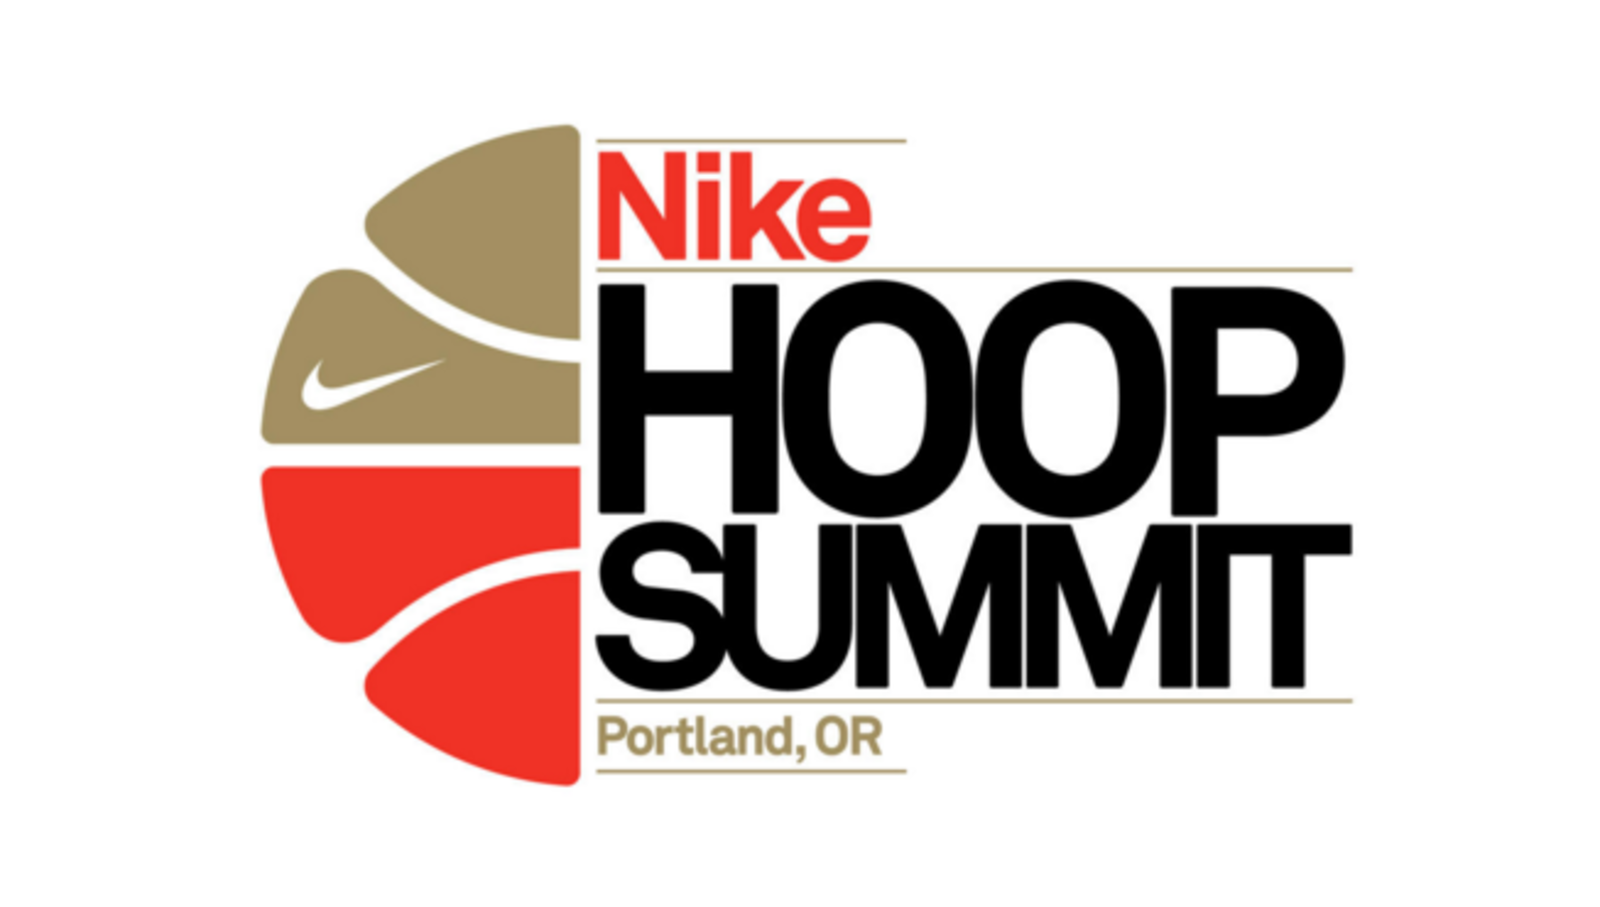 NIKE HOOP SUMMIT 2017